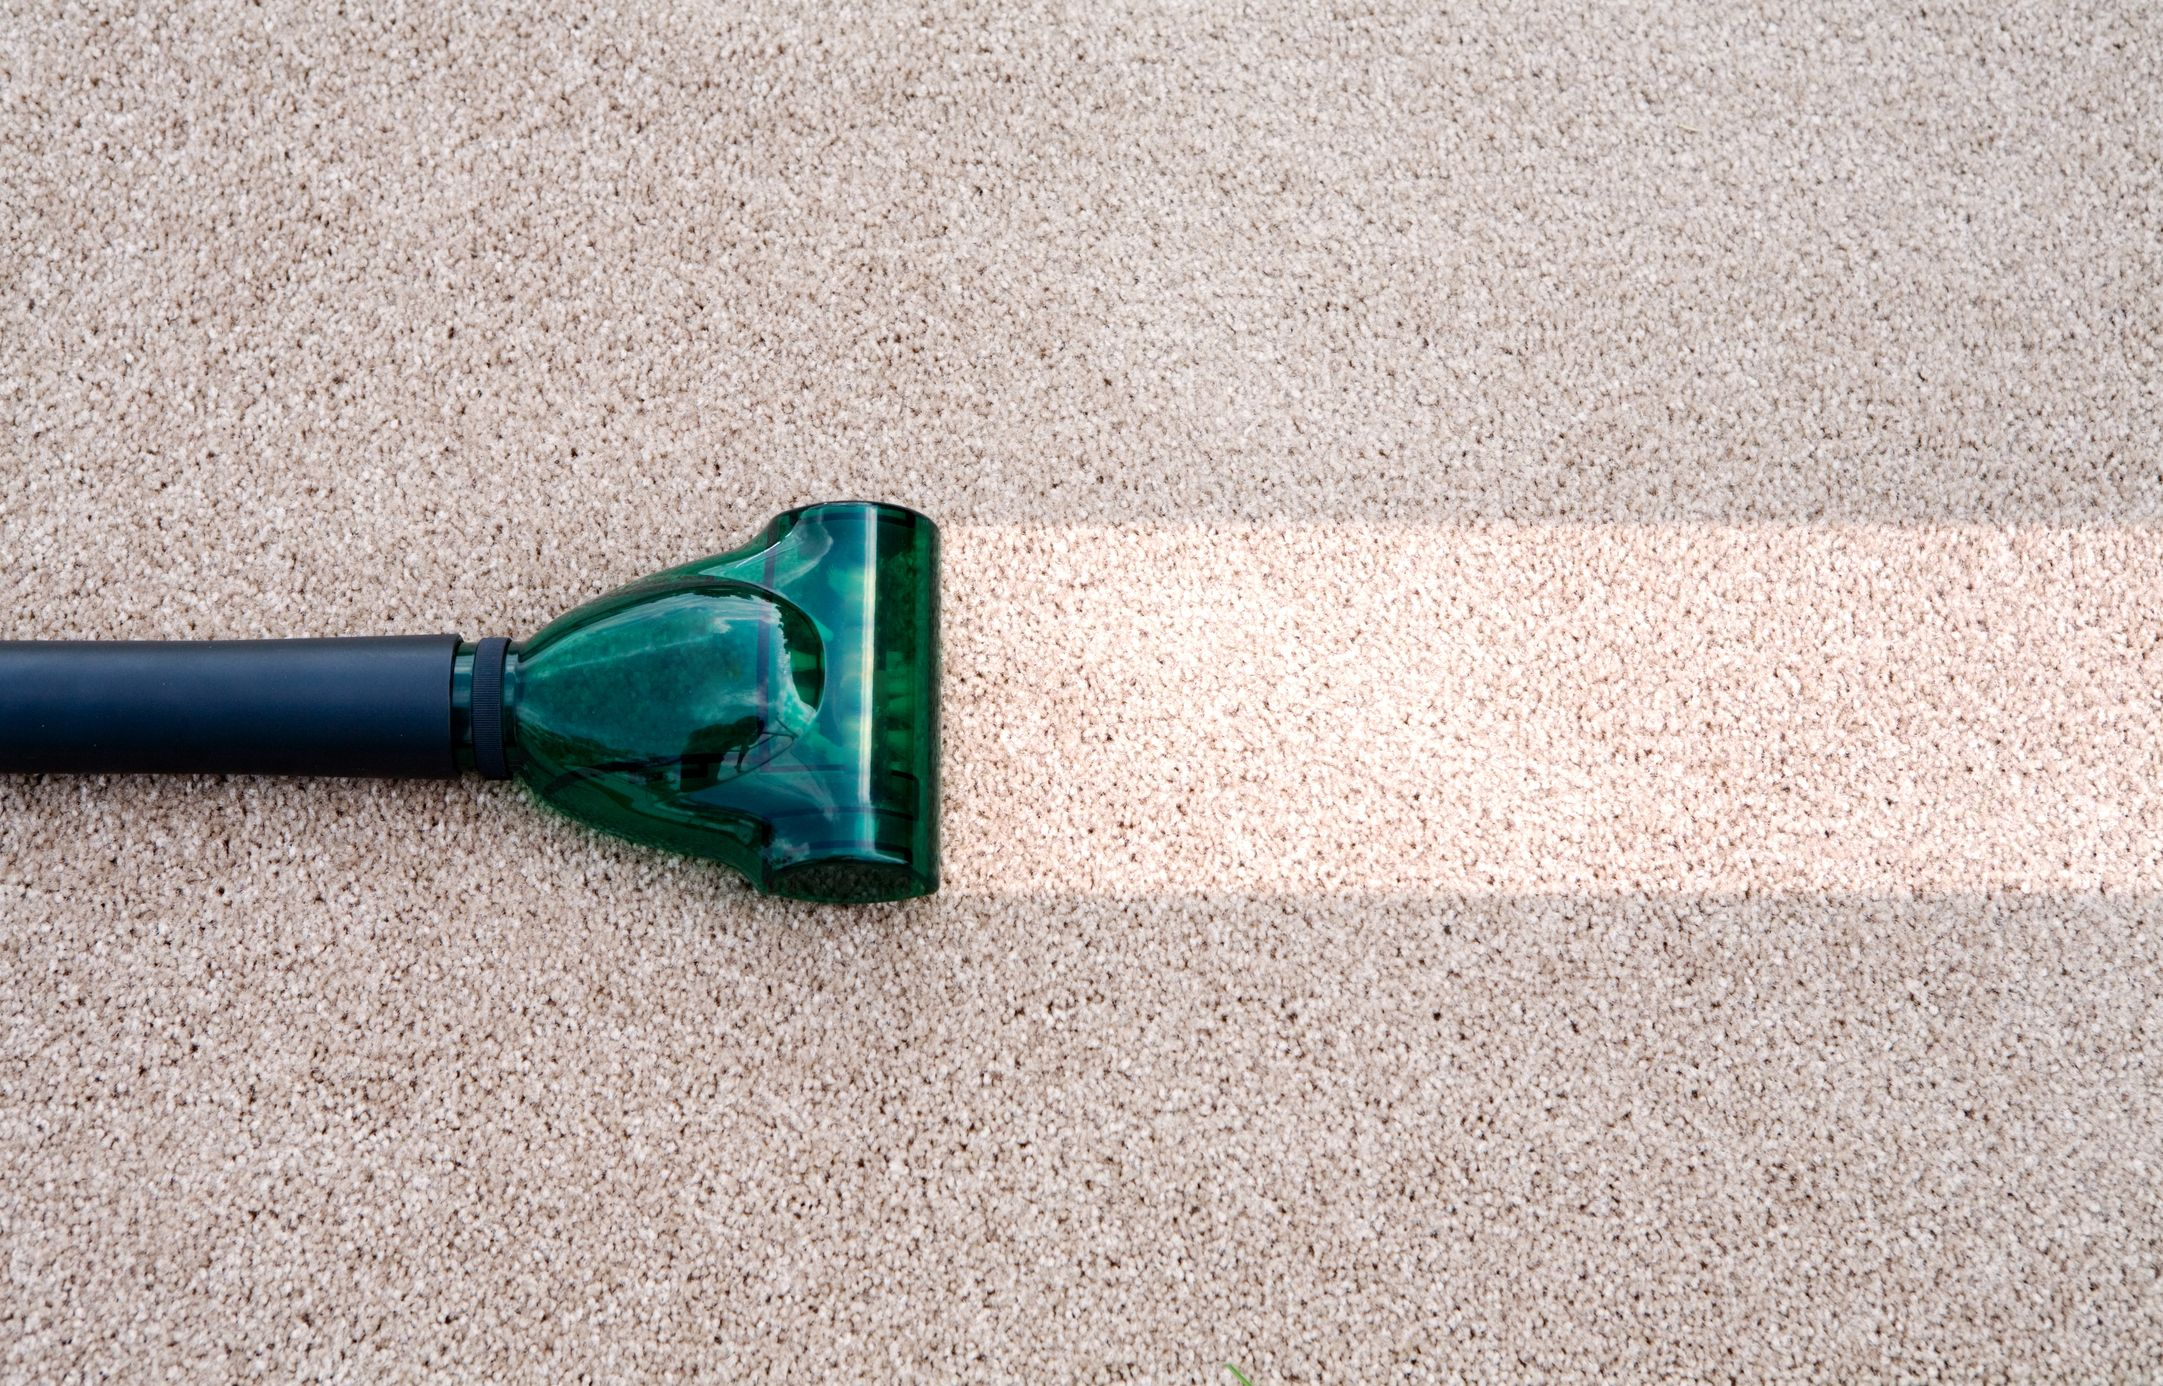 5 Carpet-Cleaning Secrets From the Pros